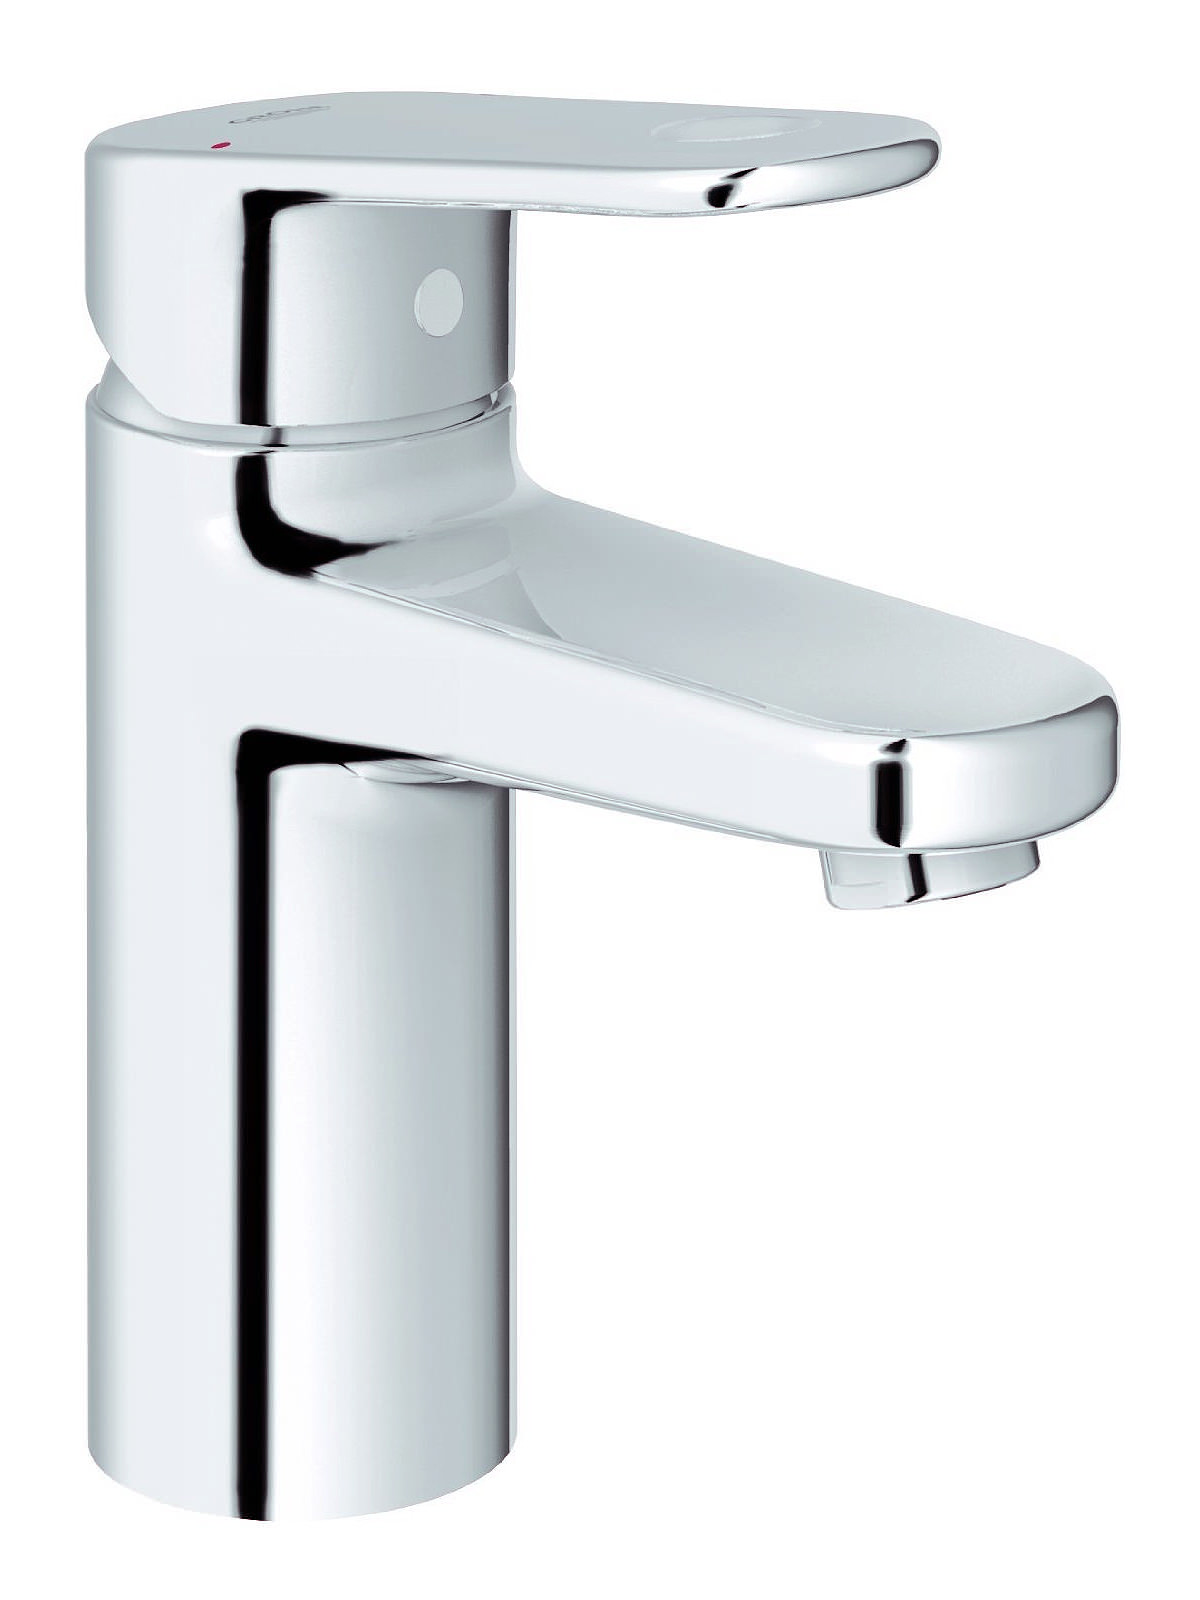 Grohe Europlus Smooth Body Mono Basin Mixer Tap With Metal Lever